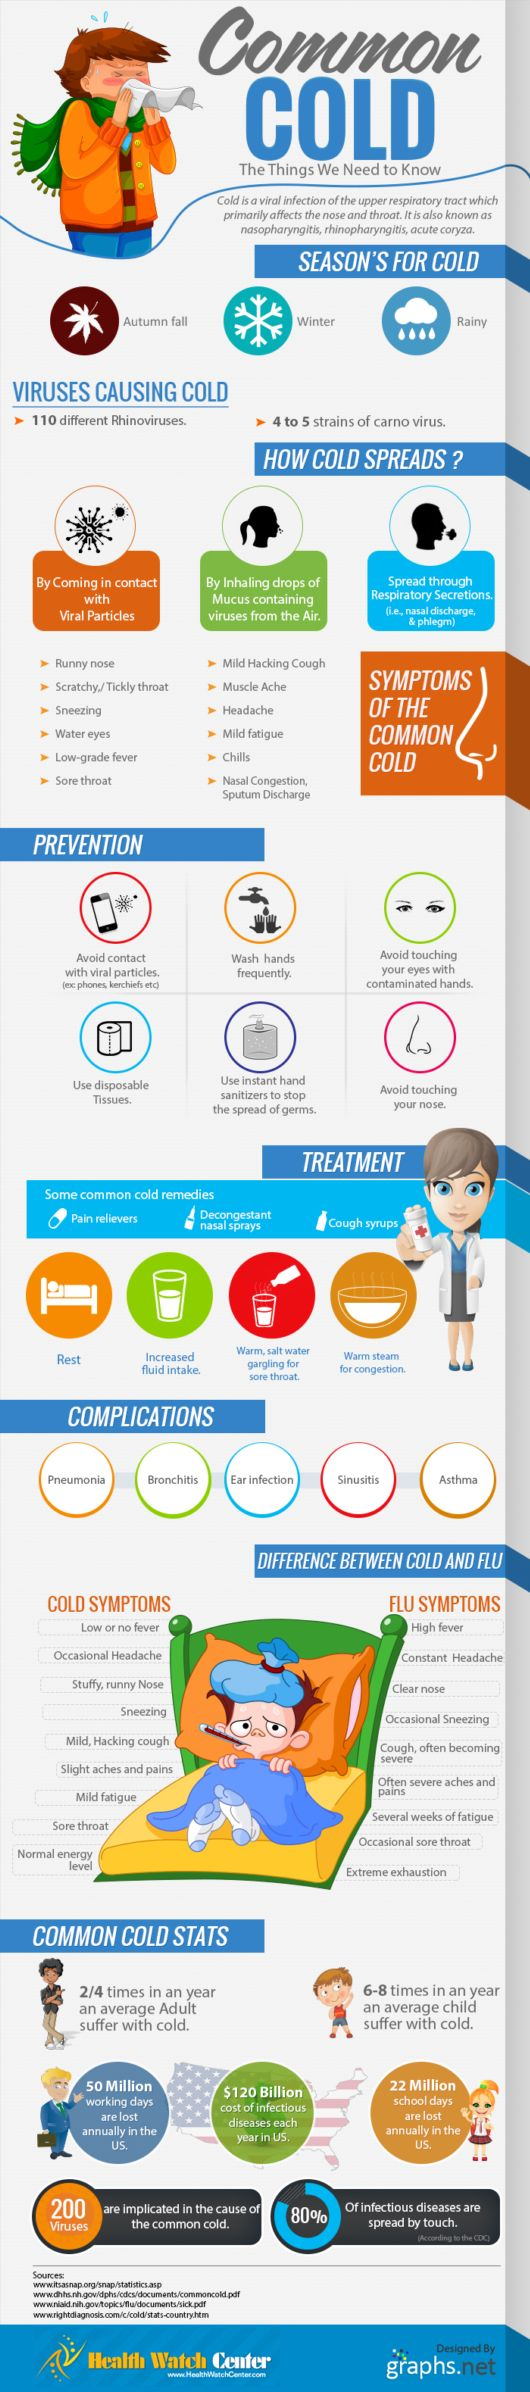 Common Cold - The Things We Need To Know